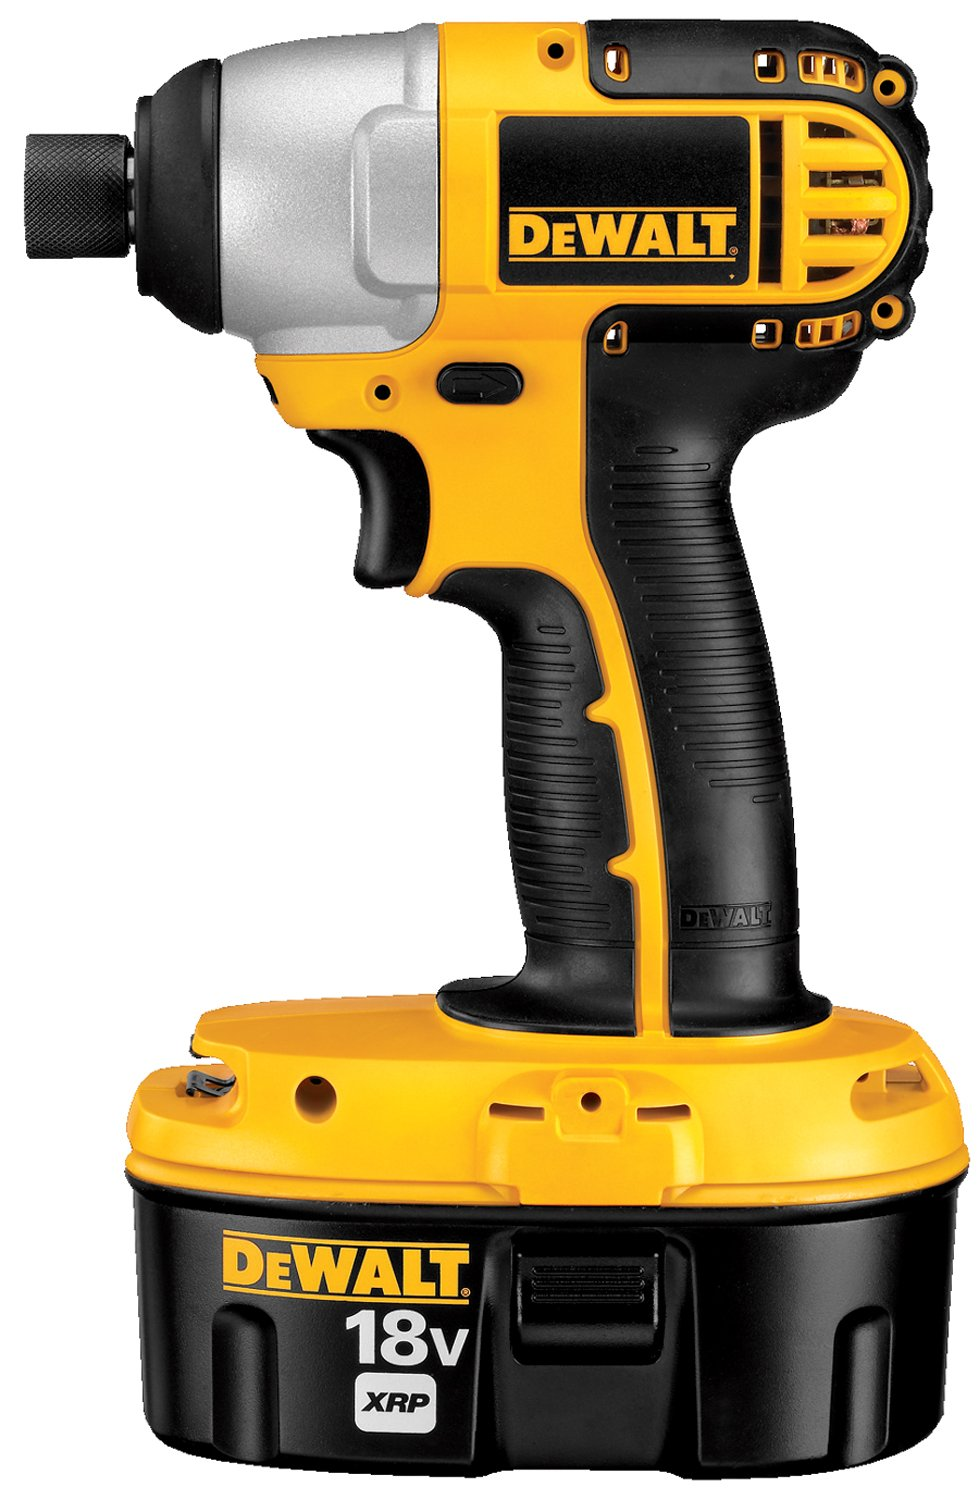 DEWALT DC825KA IMPACT DRIVERS DOWNLOAD (2019)